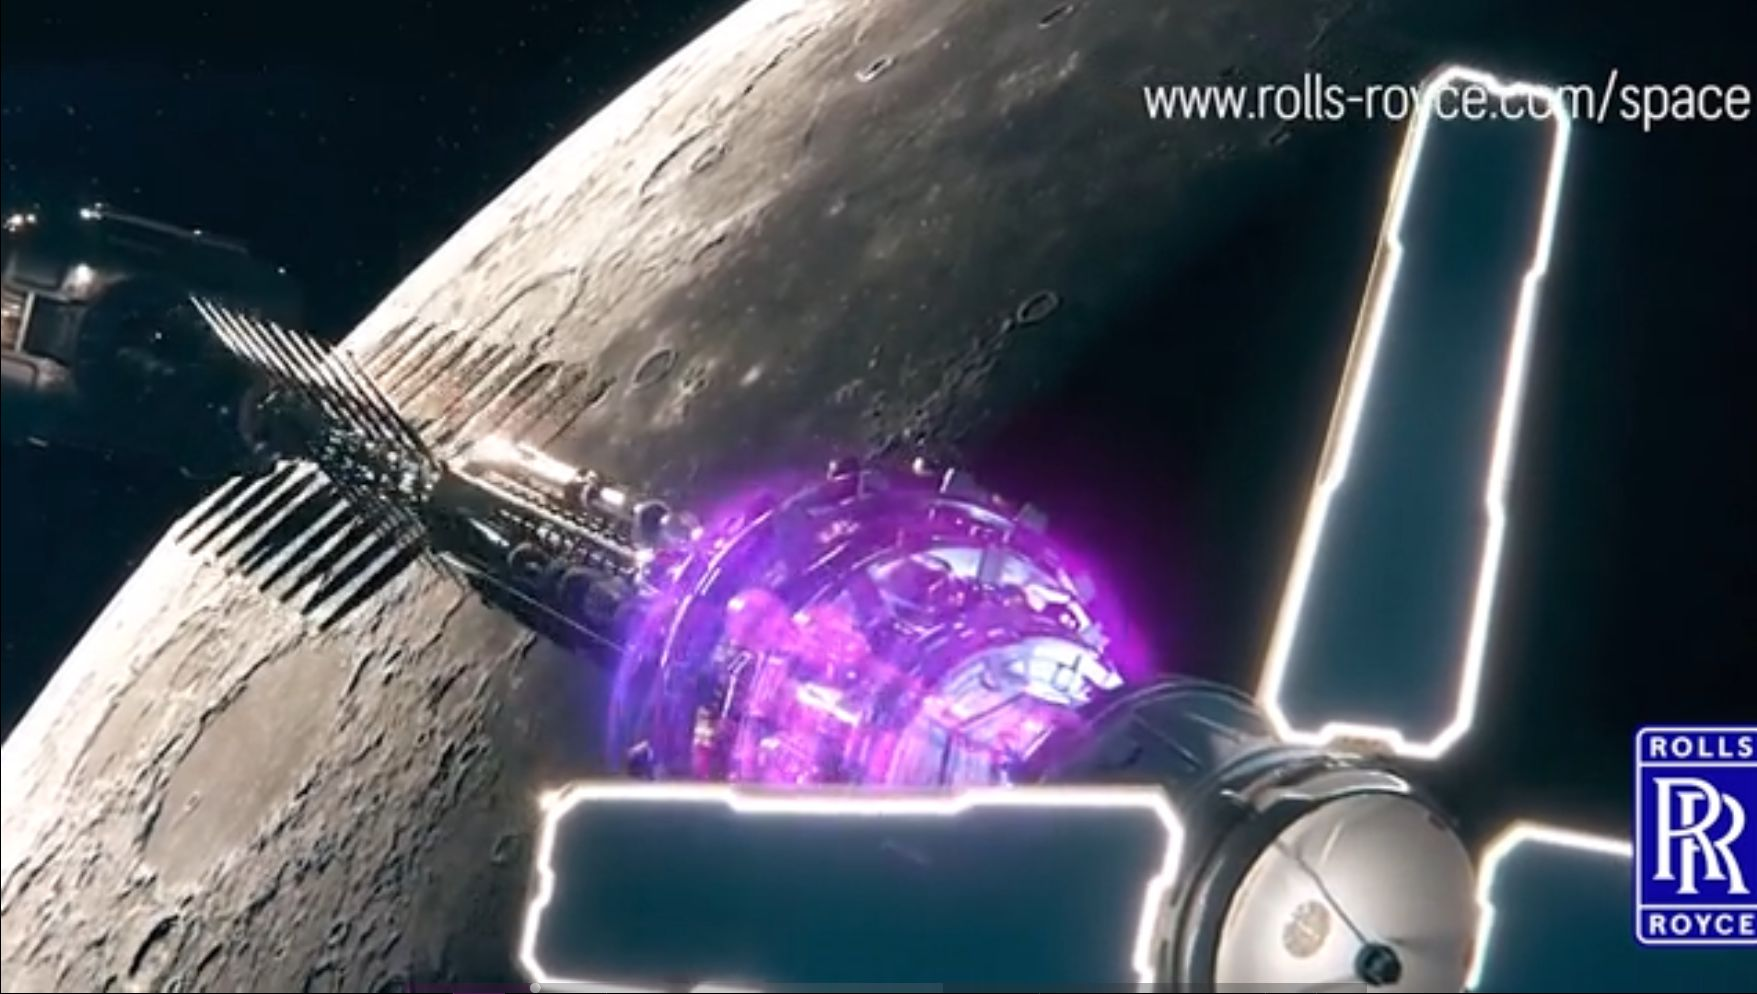 Rolls-Royce plans to mine on the moon